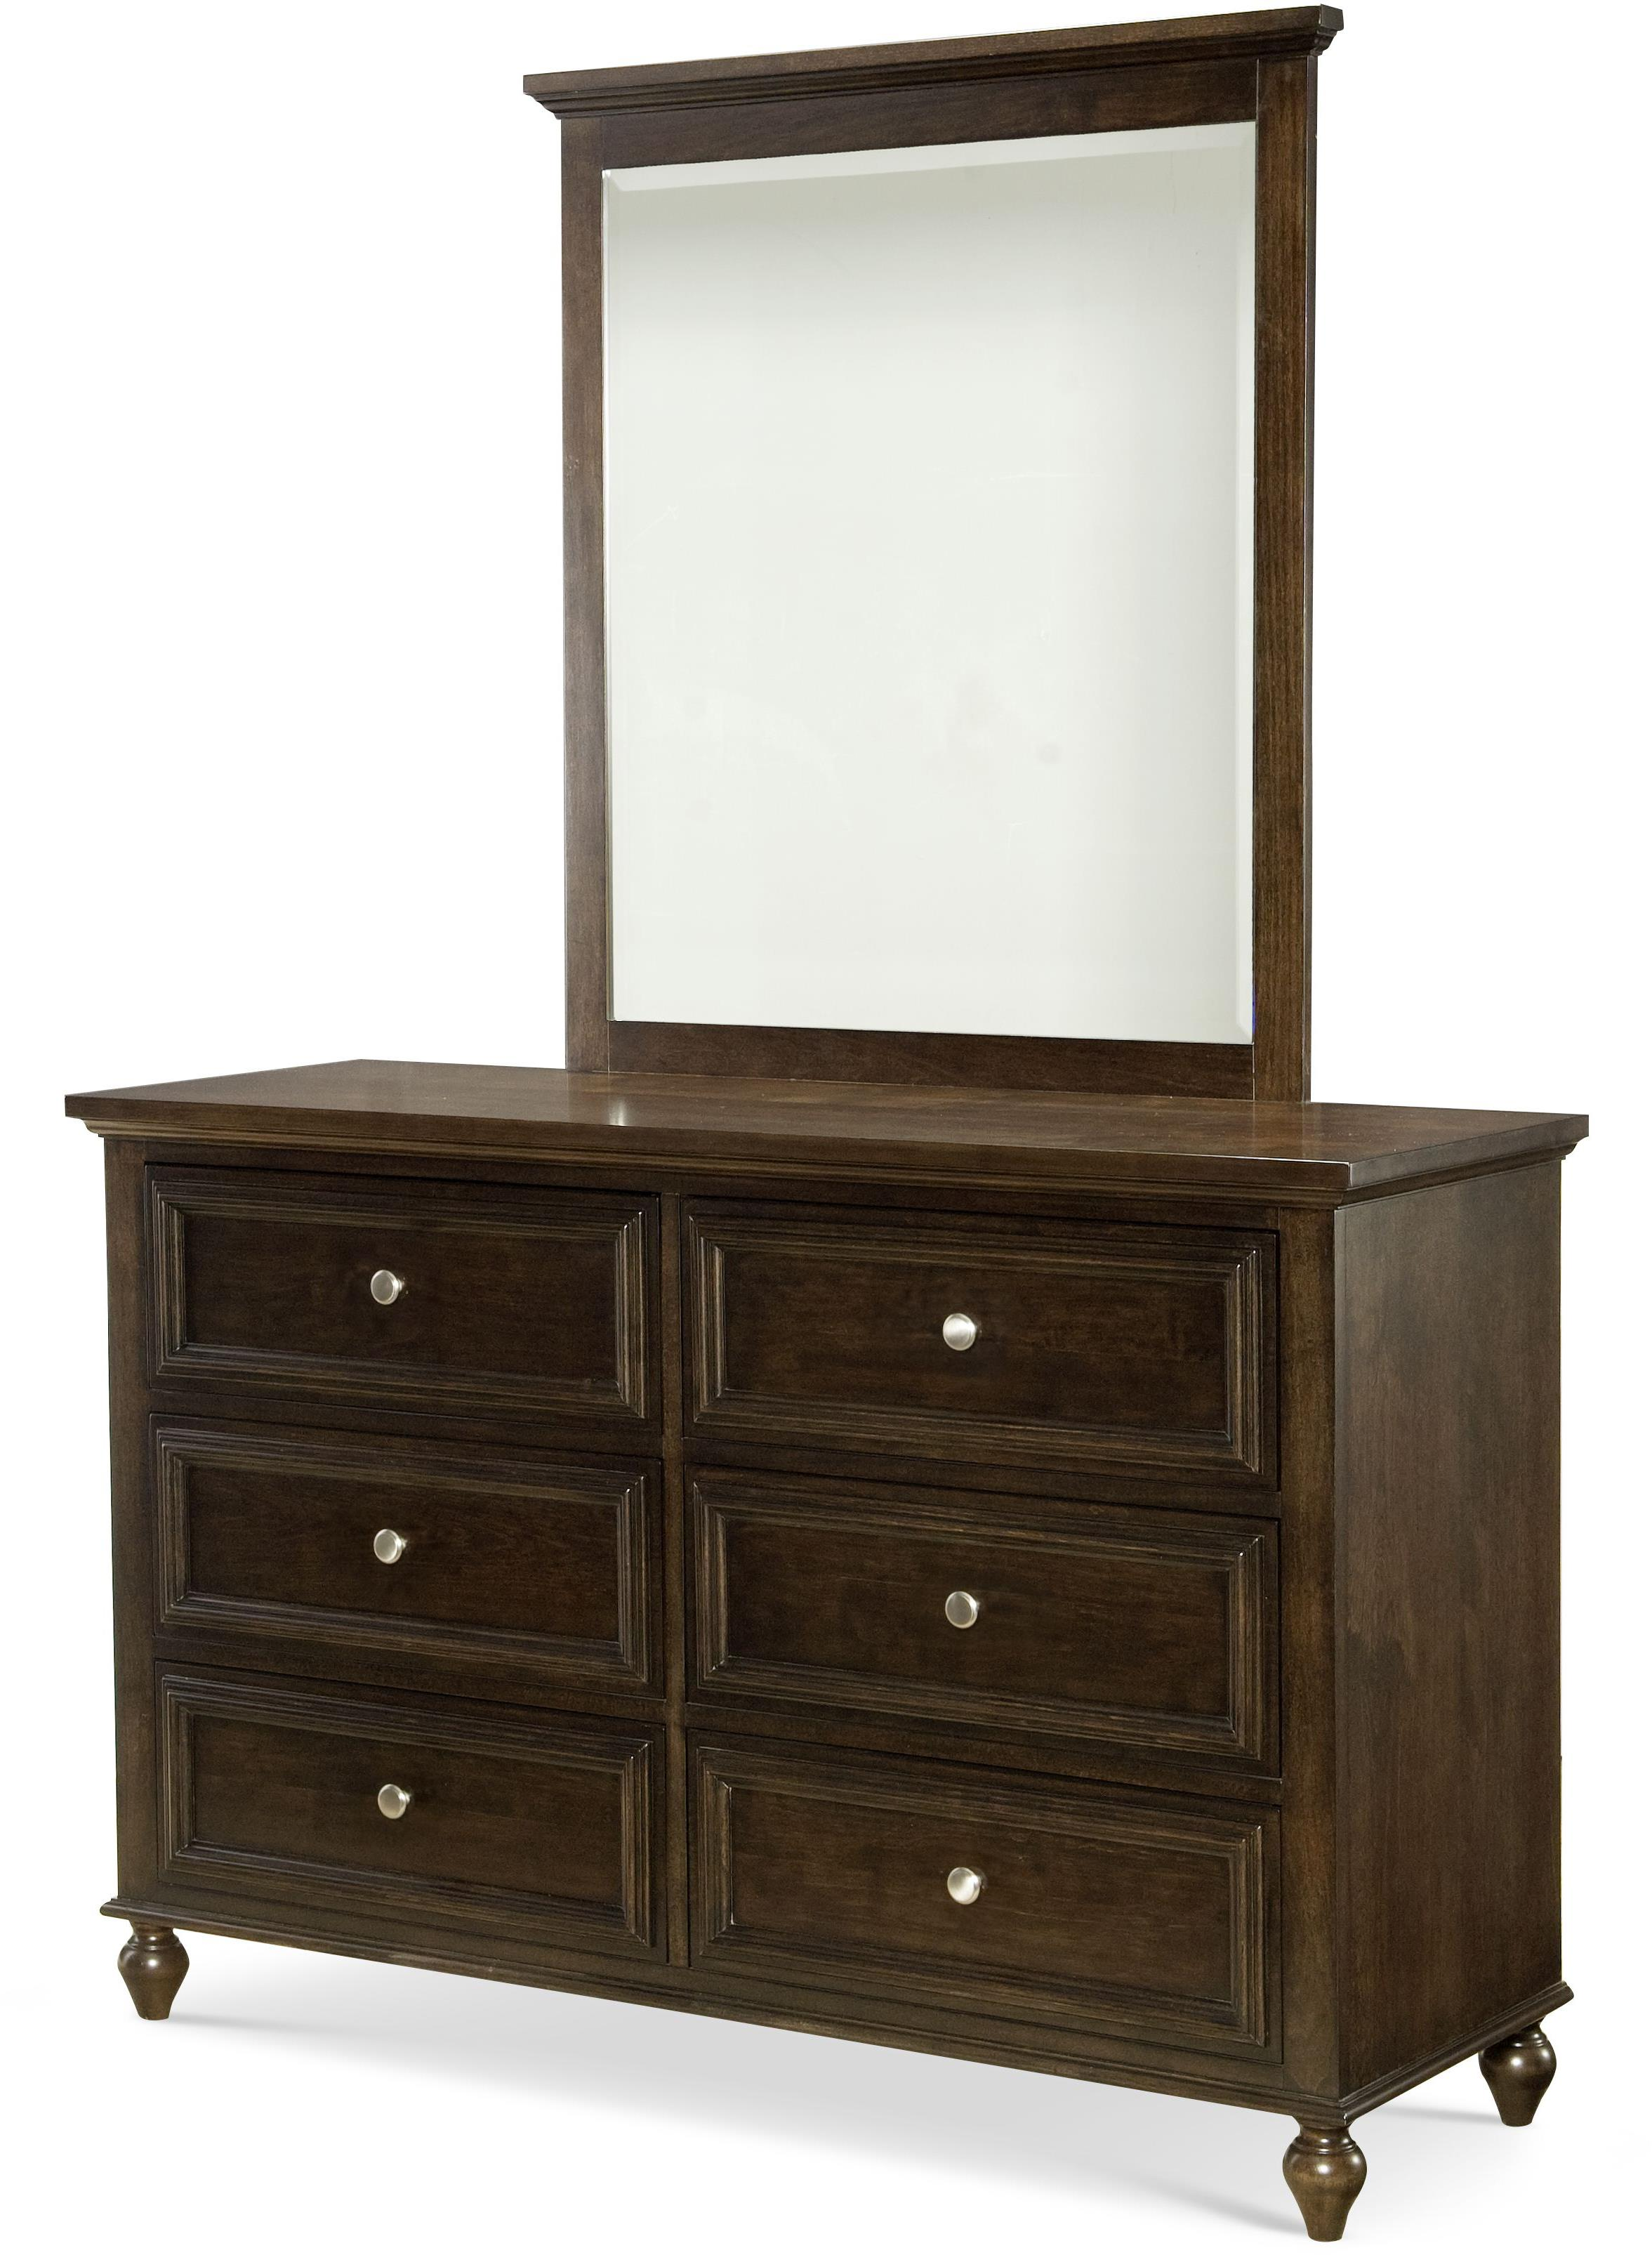 6 drawer dresser and mirror set by legacy classic kids wolf and gardiner wolf furniture. Black Bedroom Furniture Sets. Home Design Ideas